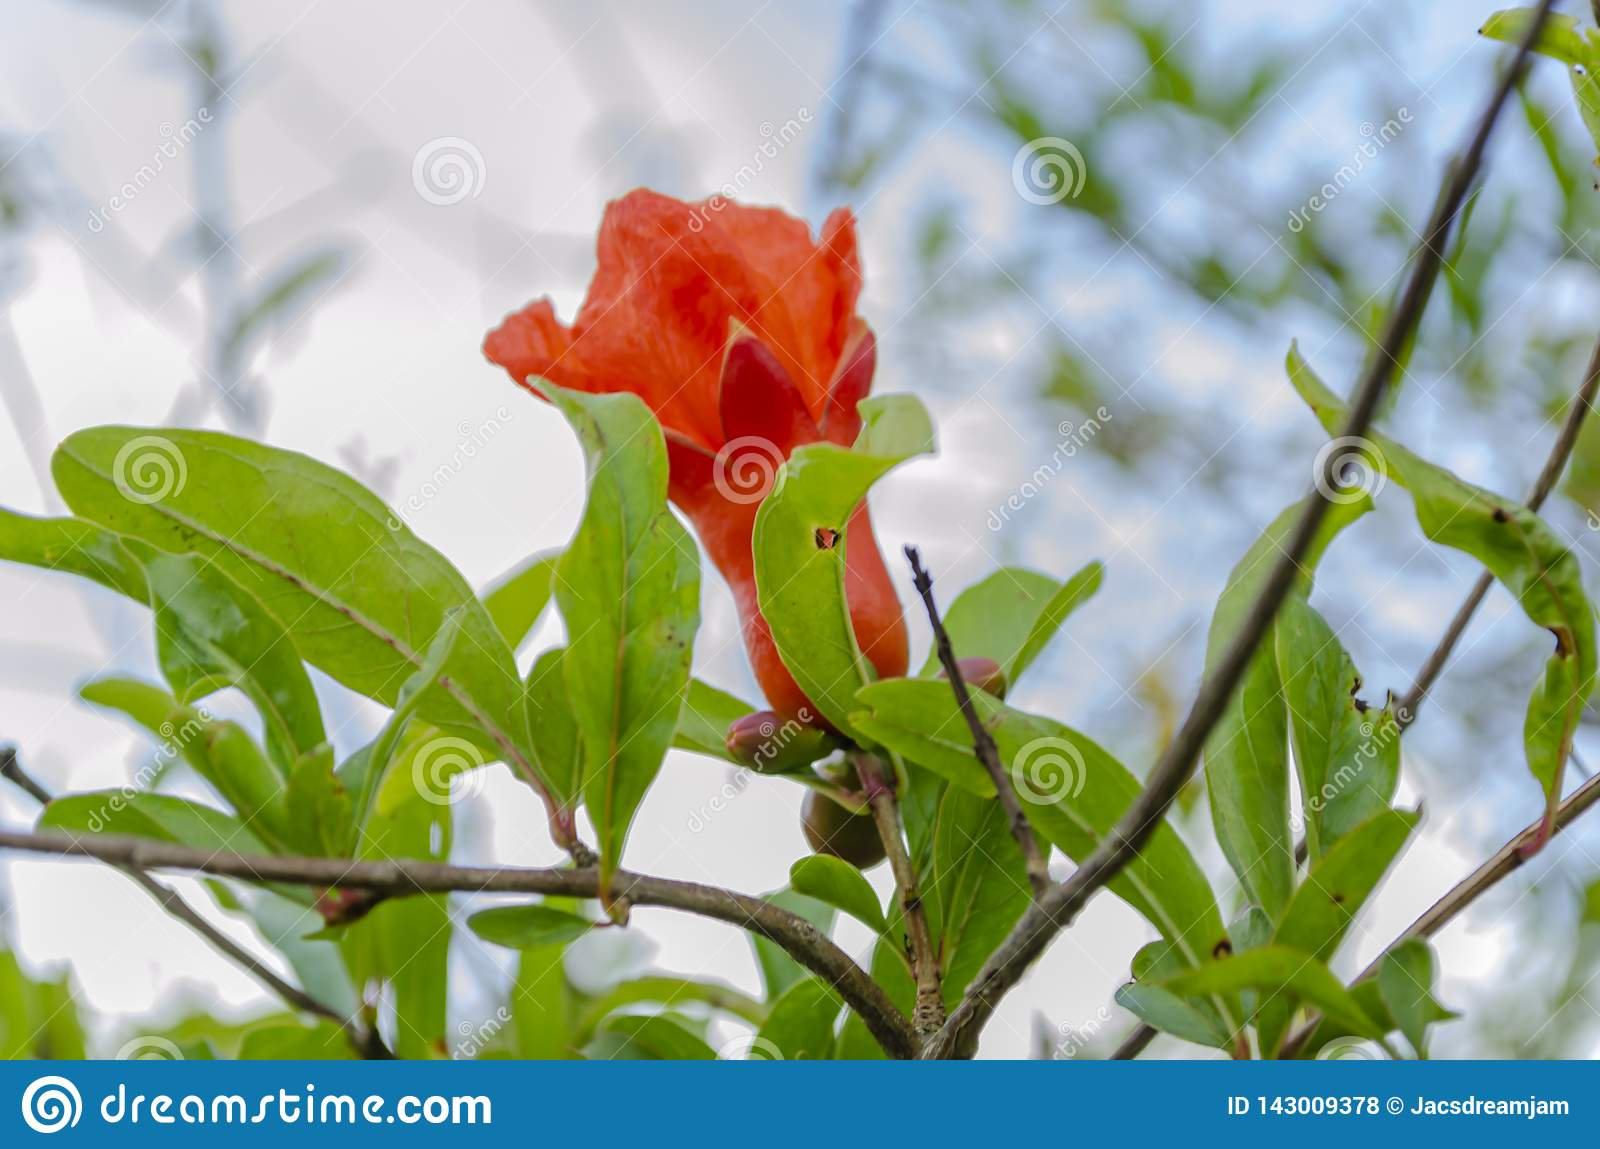 Flower and Foliage of the Pomegranate Tree